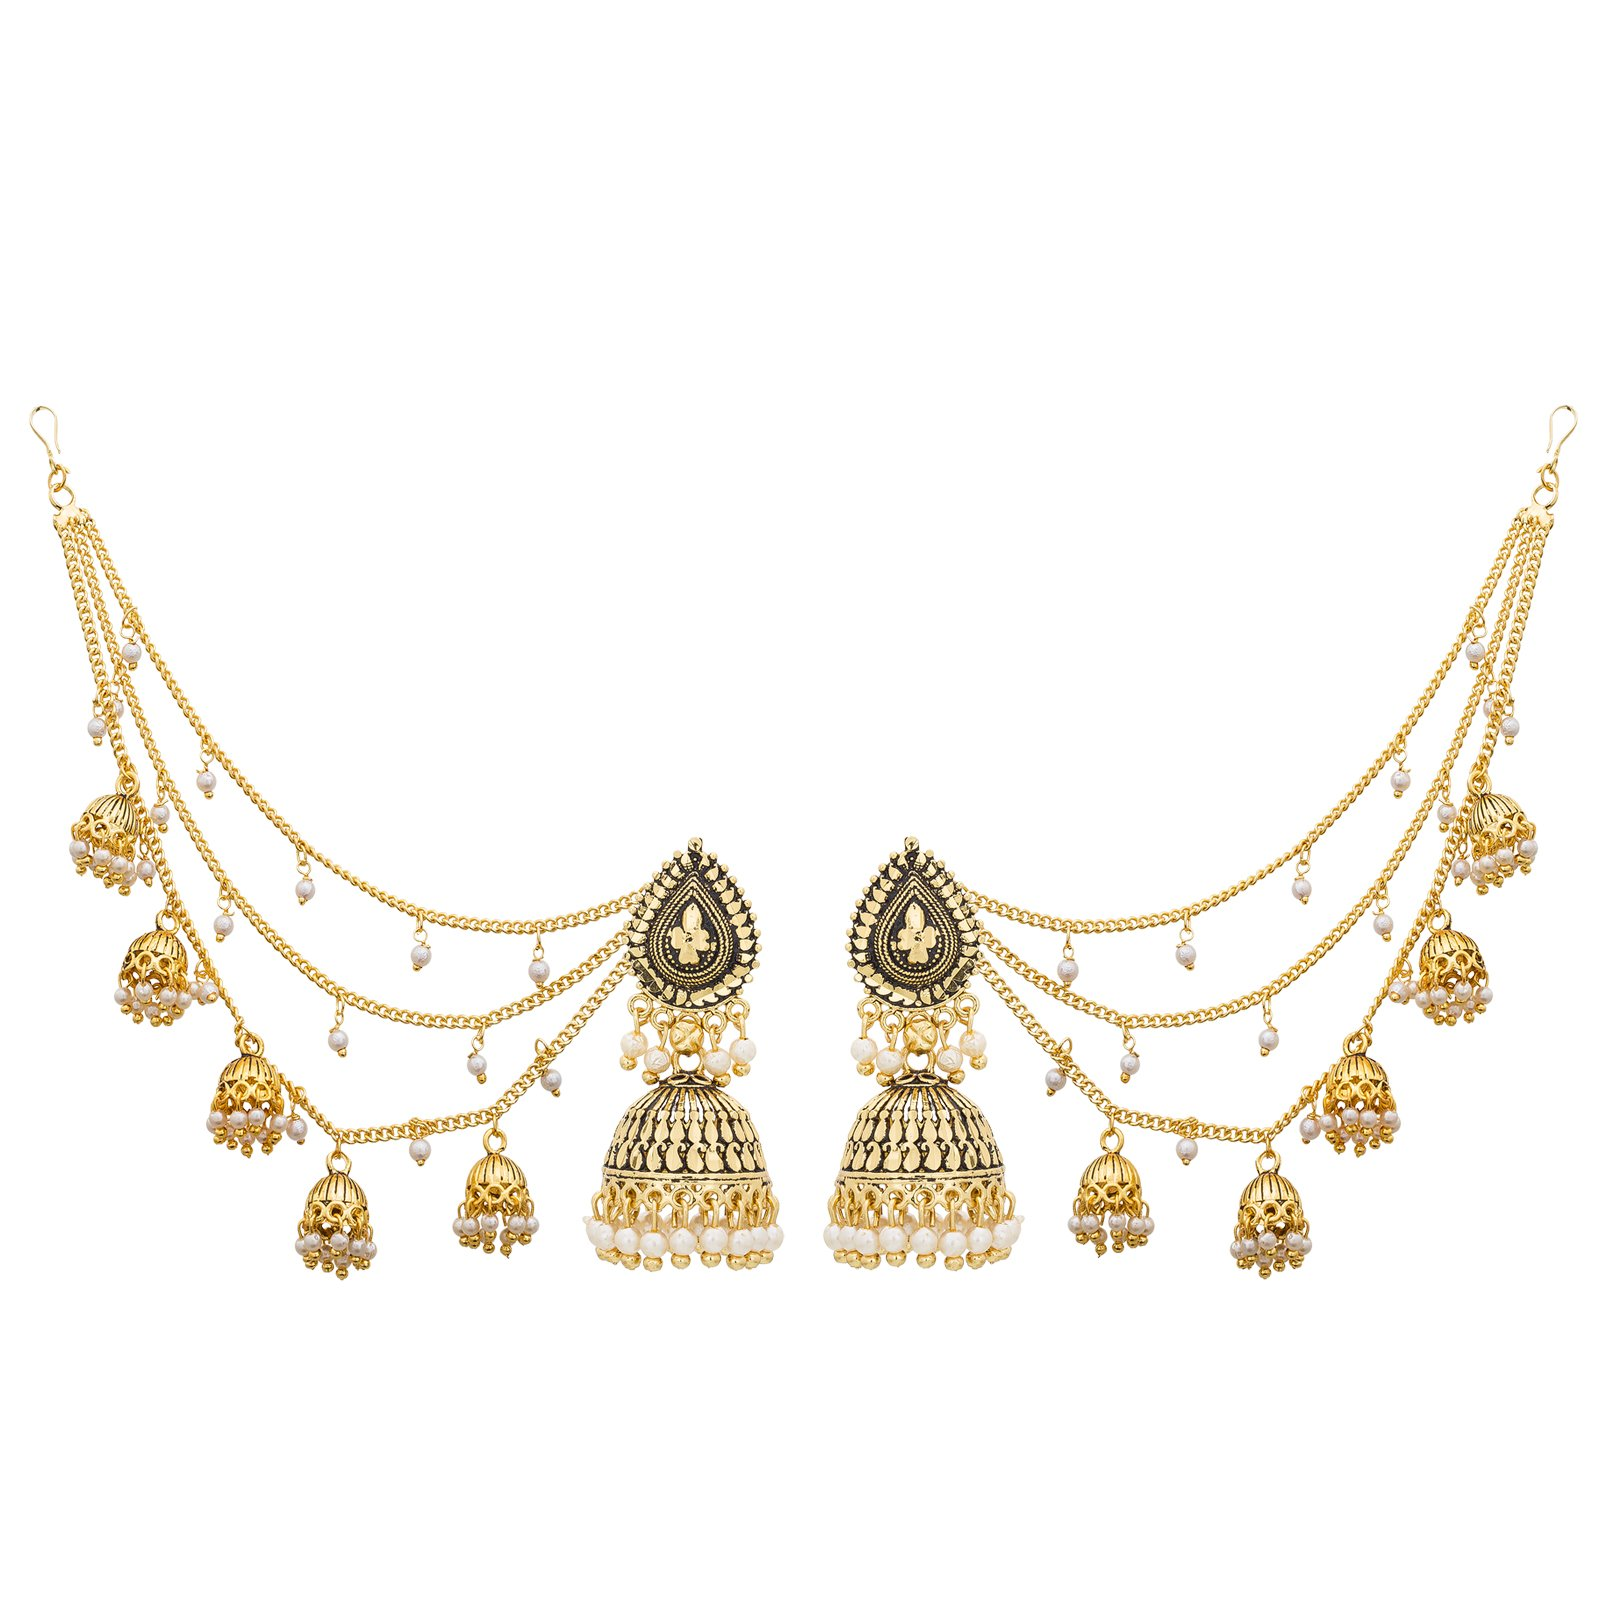 The Luxor Fashion Jewellery Traditional Gold Plated Pearl Long Chain Jhumkha Jhumkhi Earrings for Women and Girls (B07C5QX7X5) Amazon Price History, Amazon Price Tracker